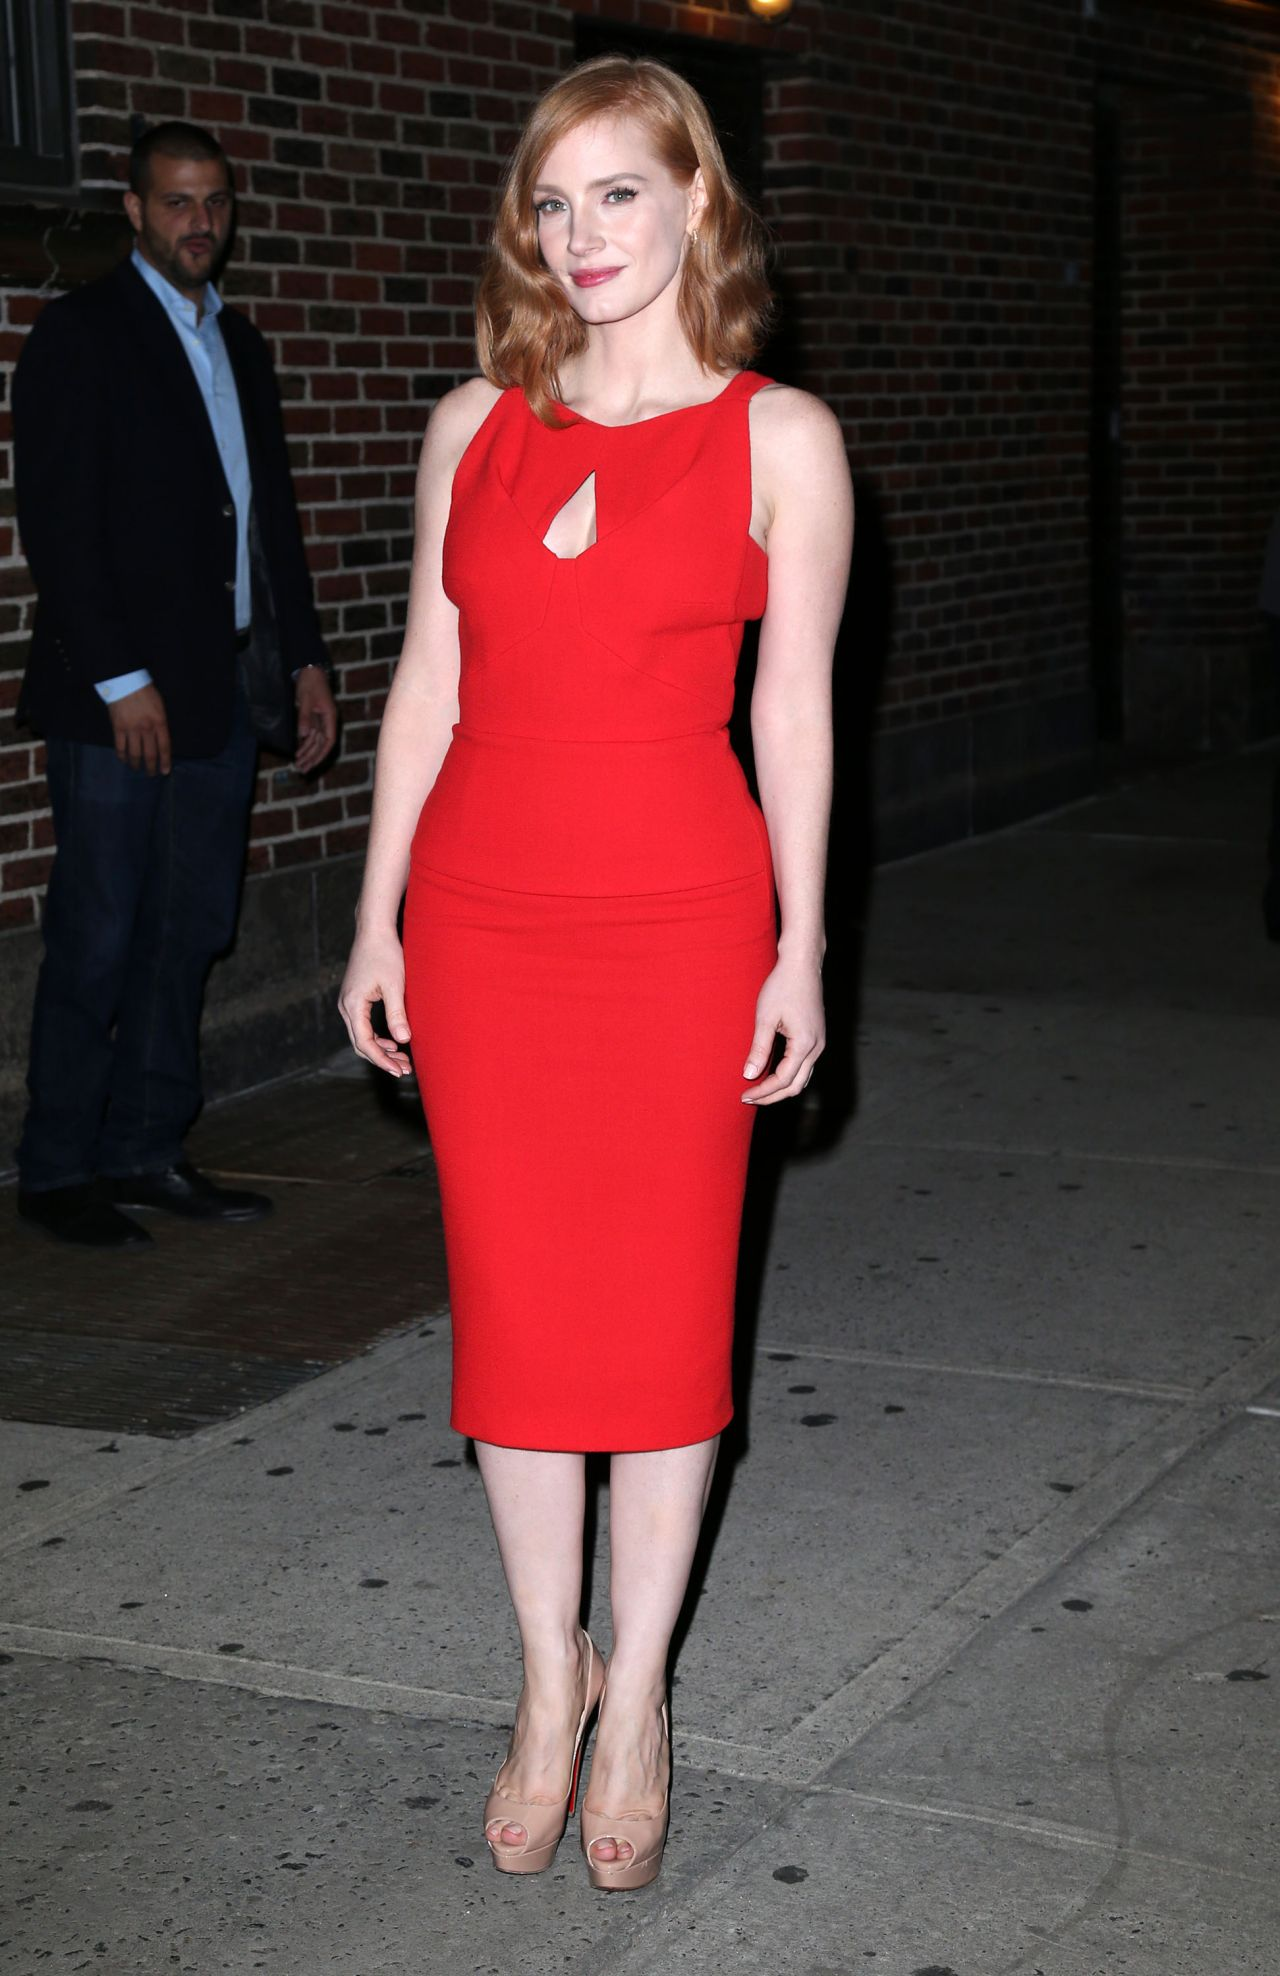 jessica-chastain-the-late-show-with-stephen-colbert-in-new-york-city-october-2015_1